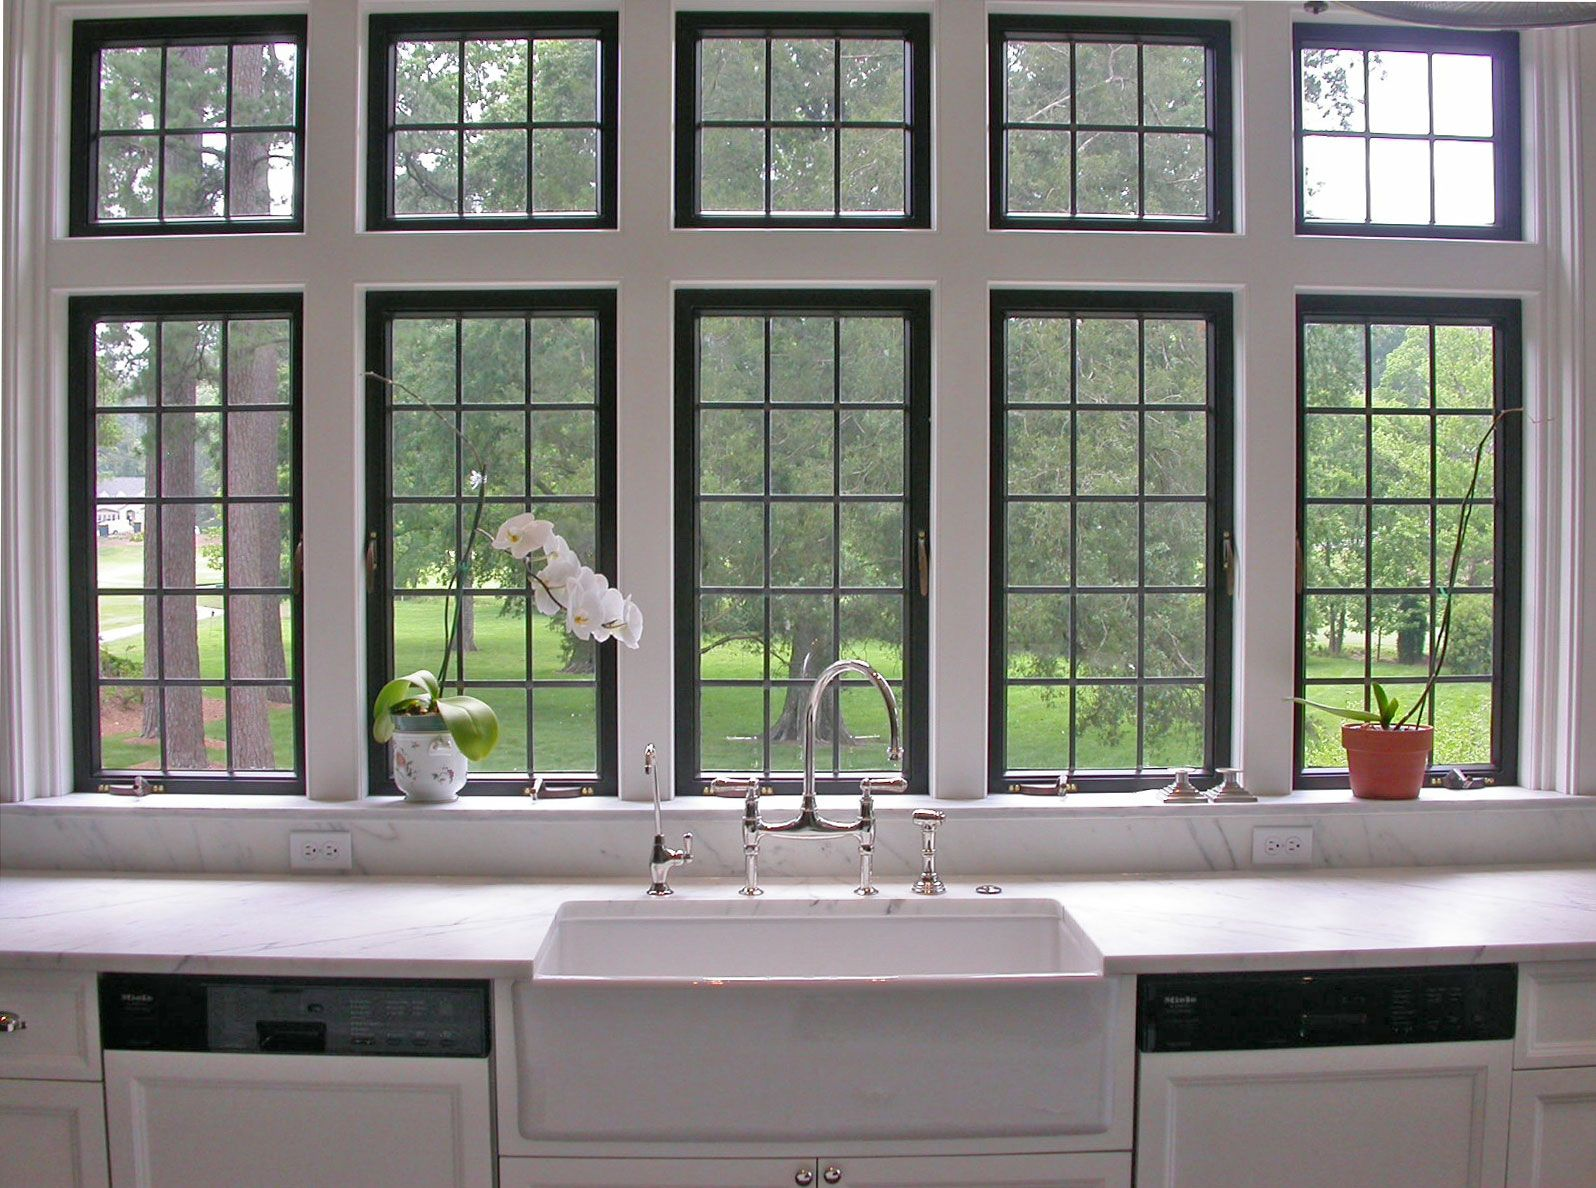 Kitchen window over sink  simple ways to revamp your kitchen  kitchens window frames and sinks